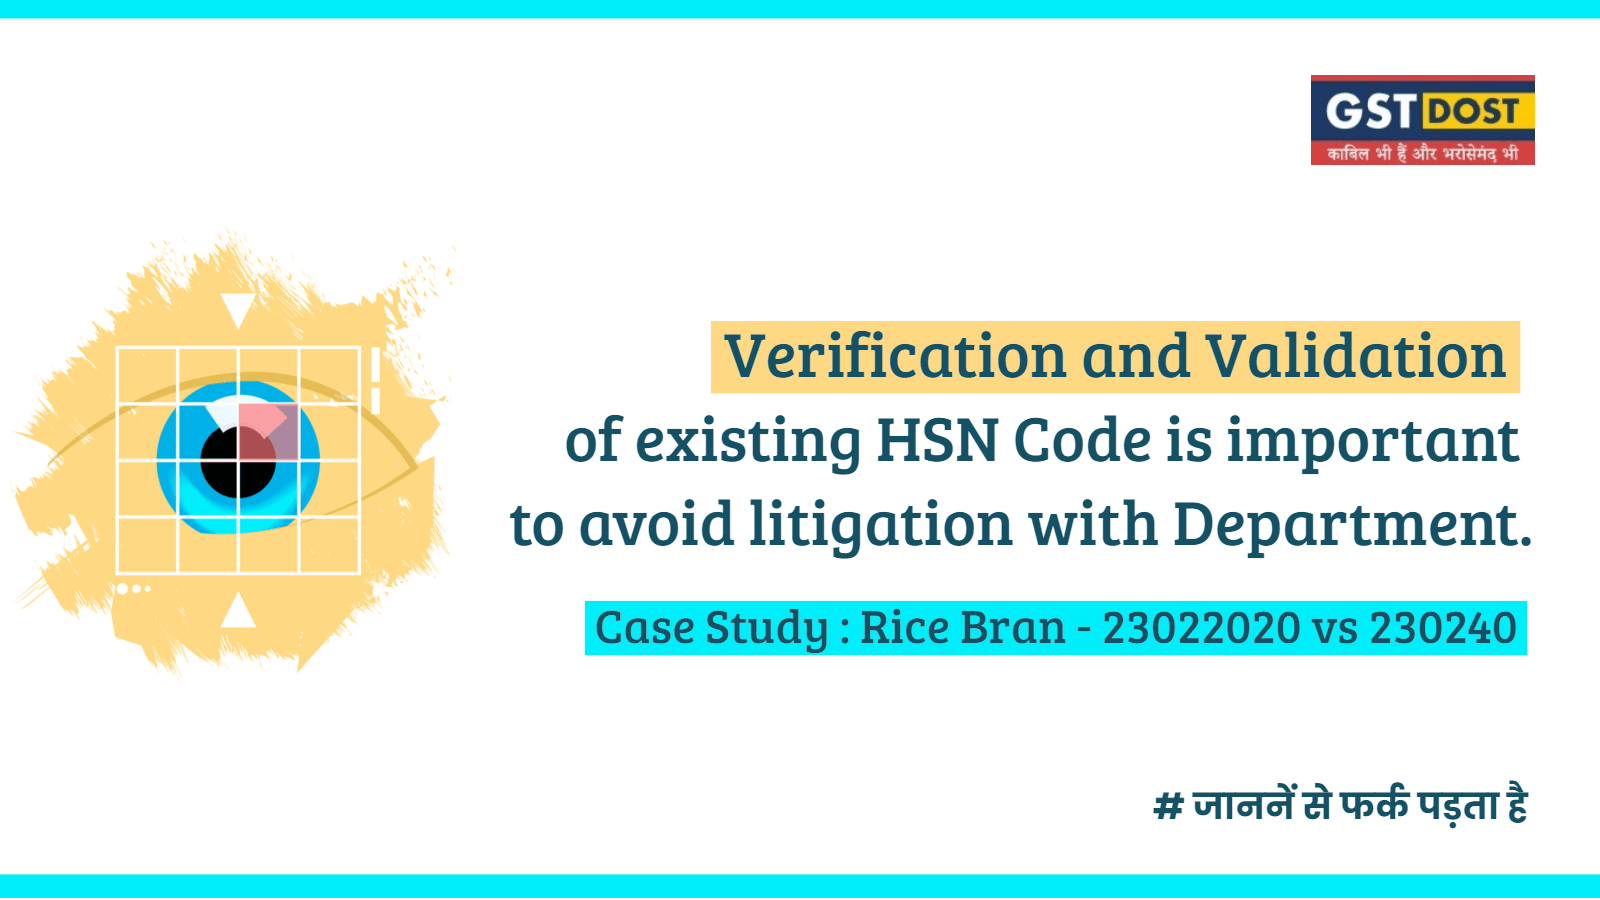 Are you Verifying your Old HSN Codes? Read on to find Why it is Important! [Case Study - Rice Bran - 23022020 vs 230240]